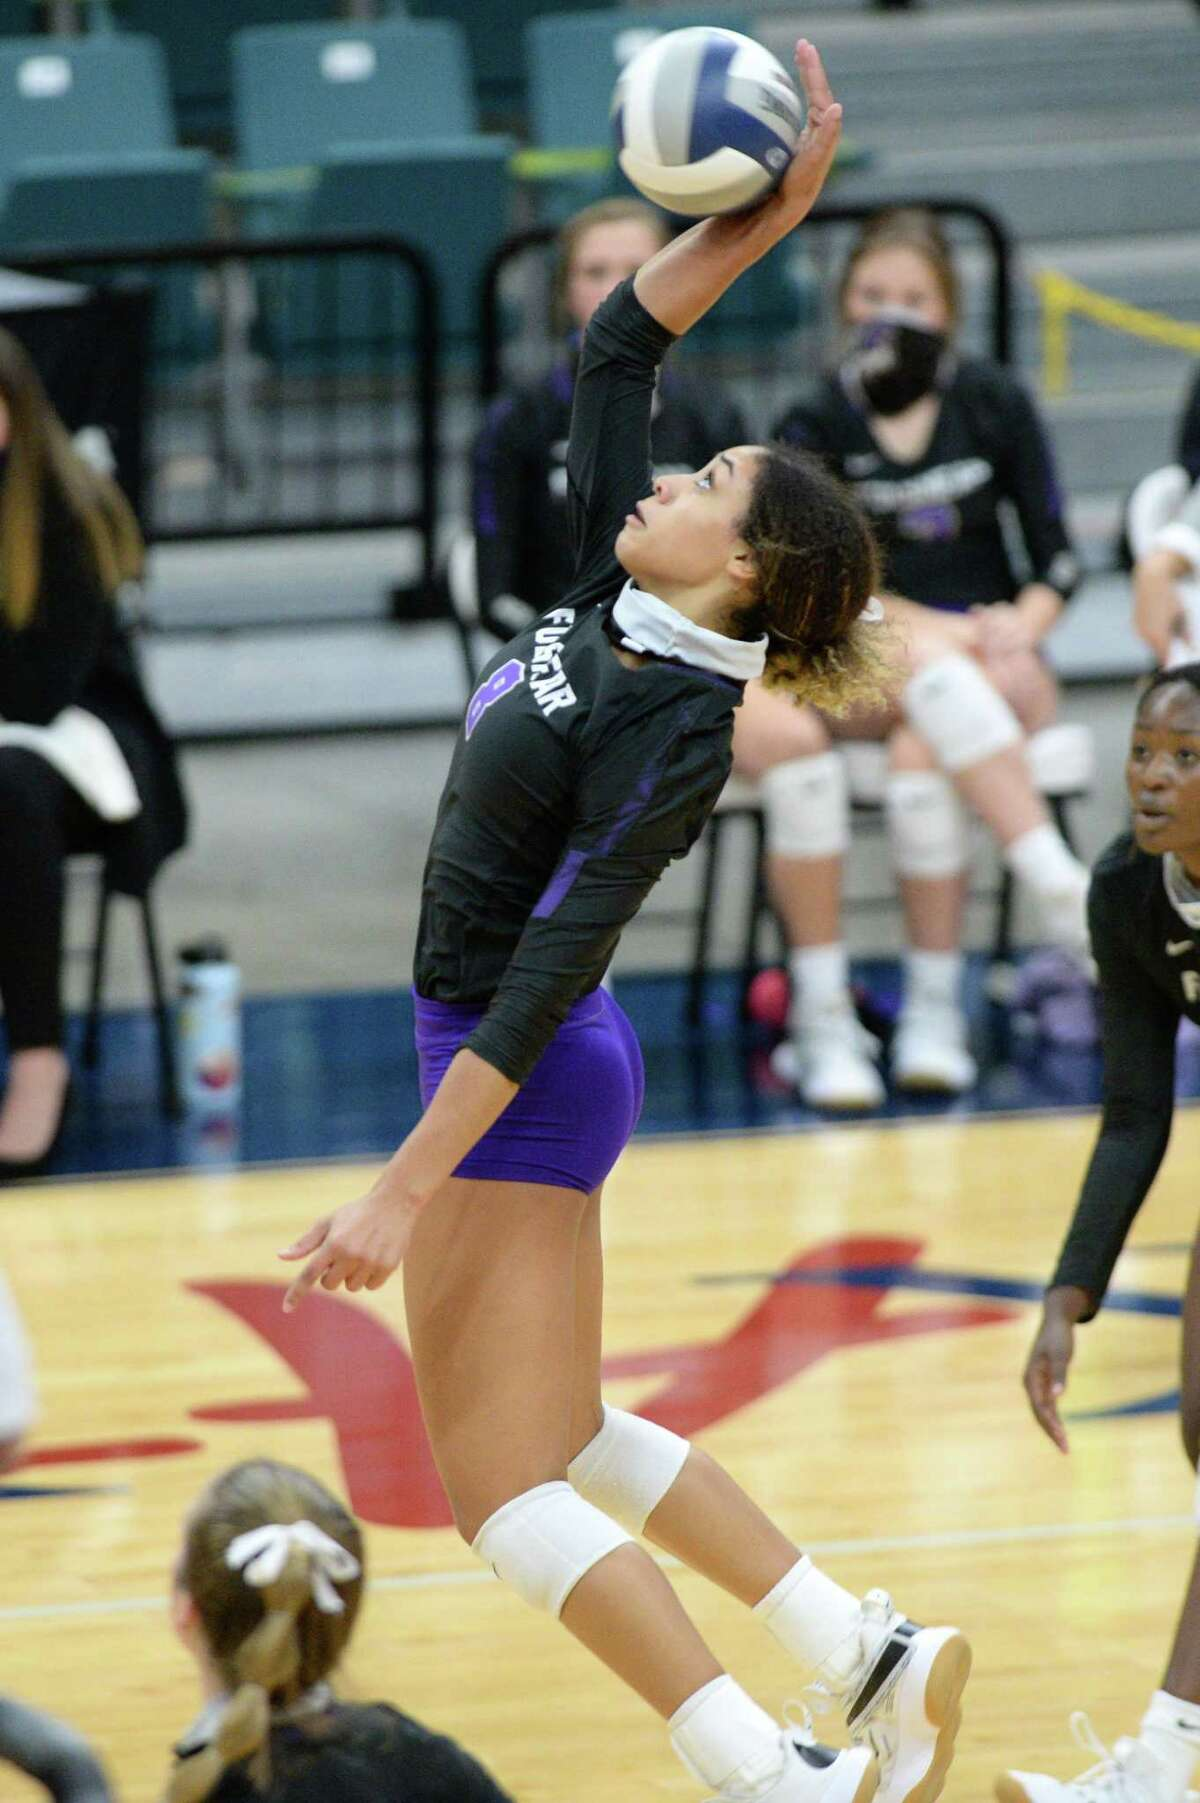 Alexis Dacosta (8) of Fulshear attempts a shot during the third set of the 5A Region 3 Championship between the Fulshear Chargers and the College Station Cougars on Thursday, December 3, 2020 at Leonard Merrell Center, Katy, TX.